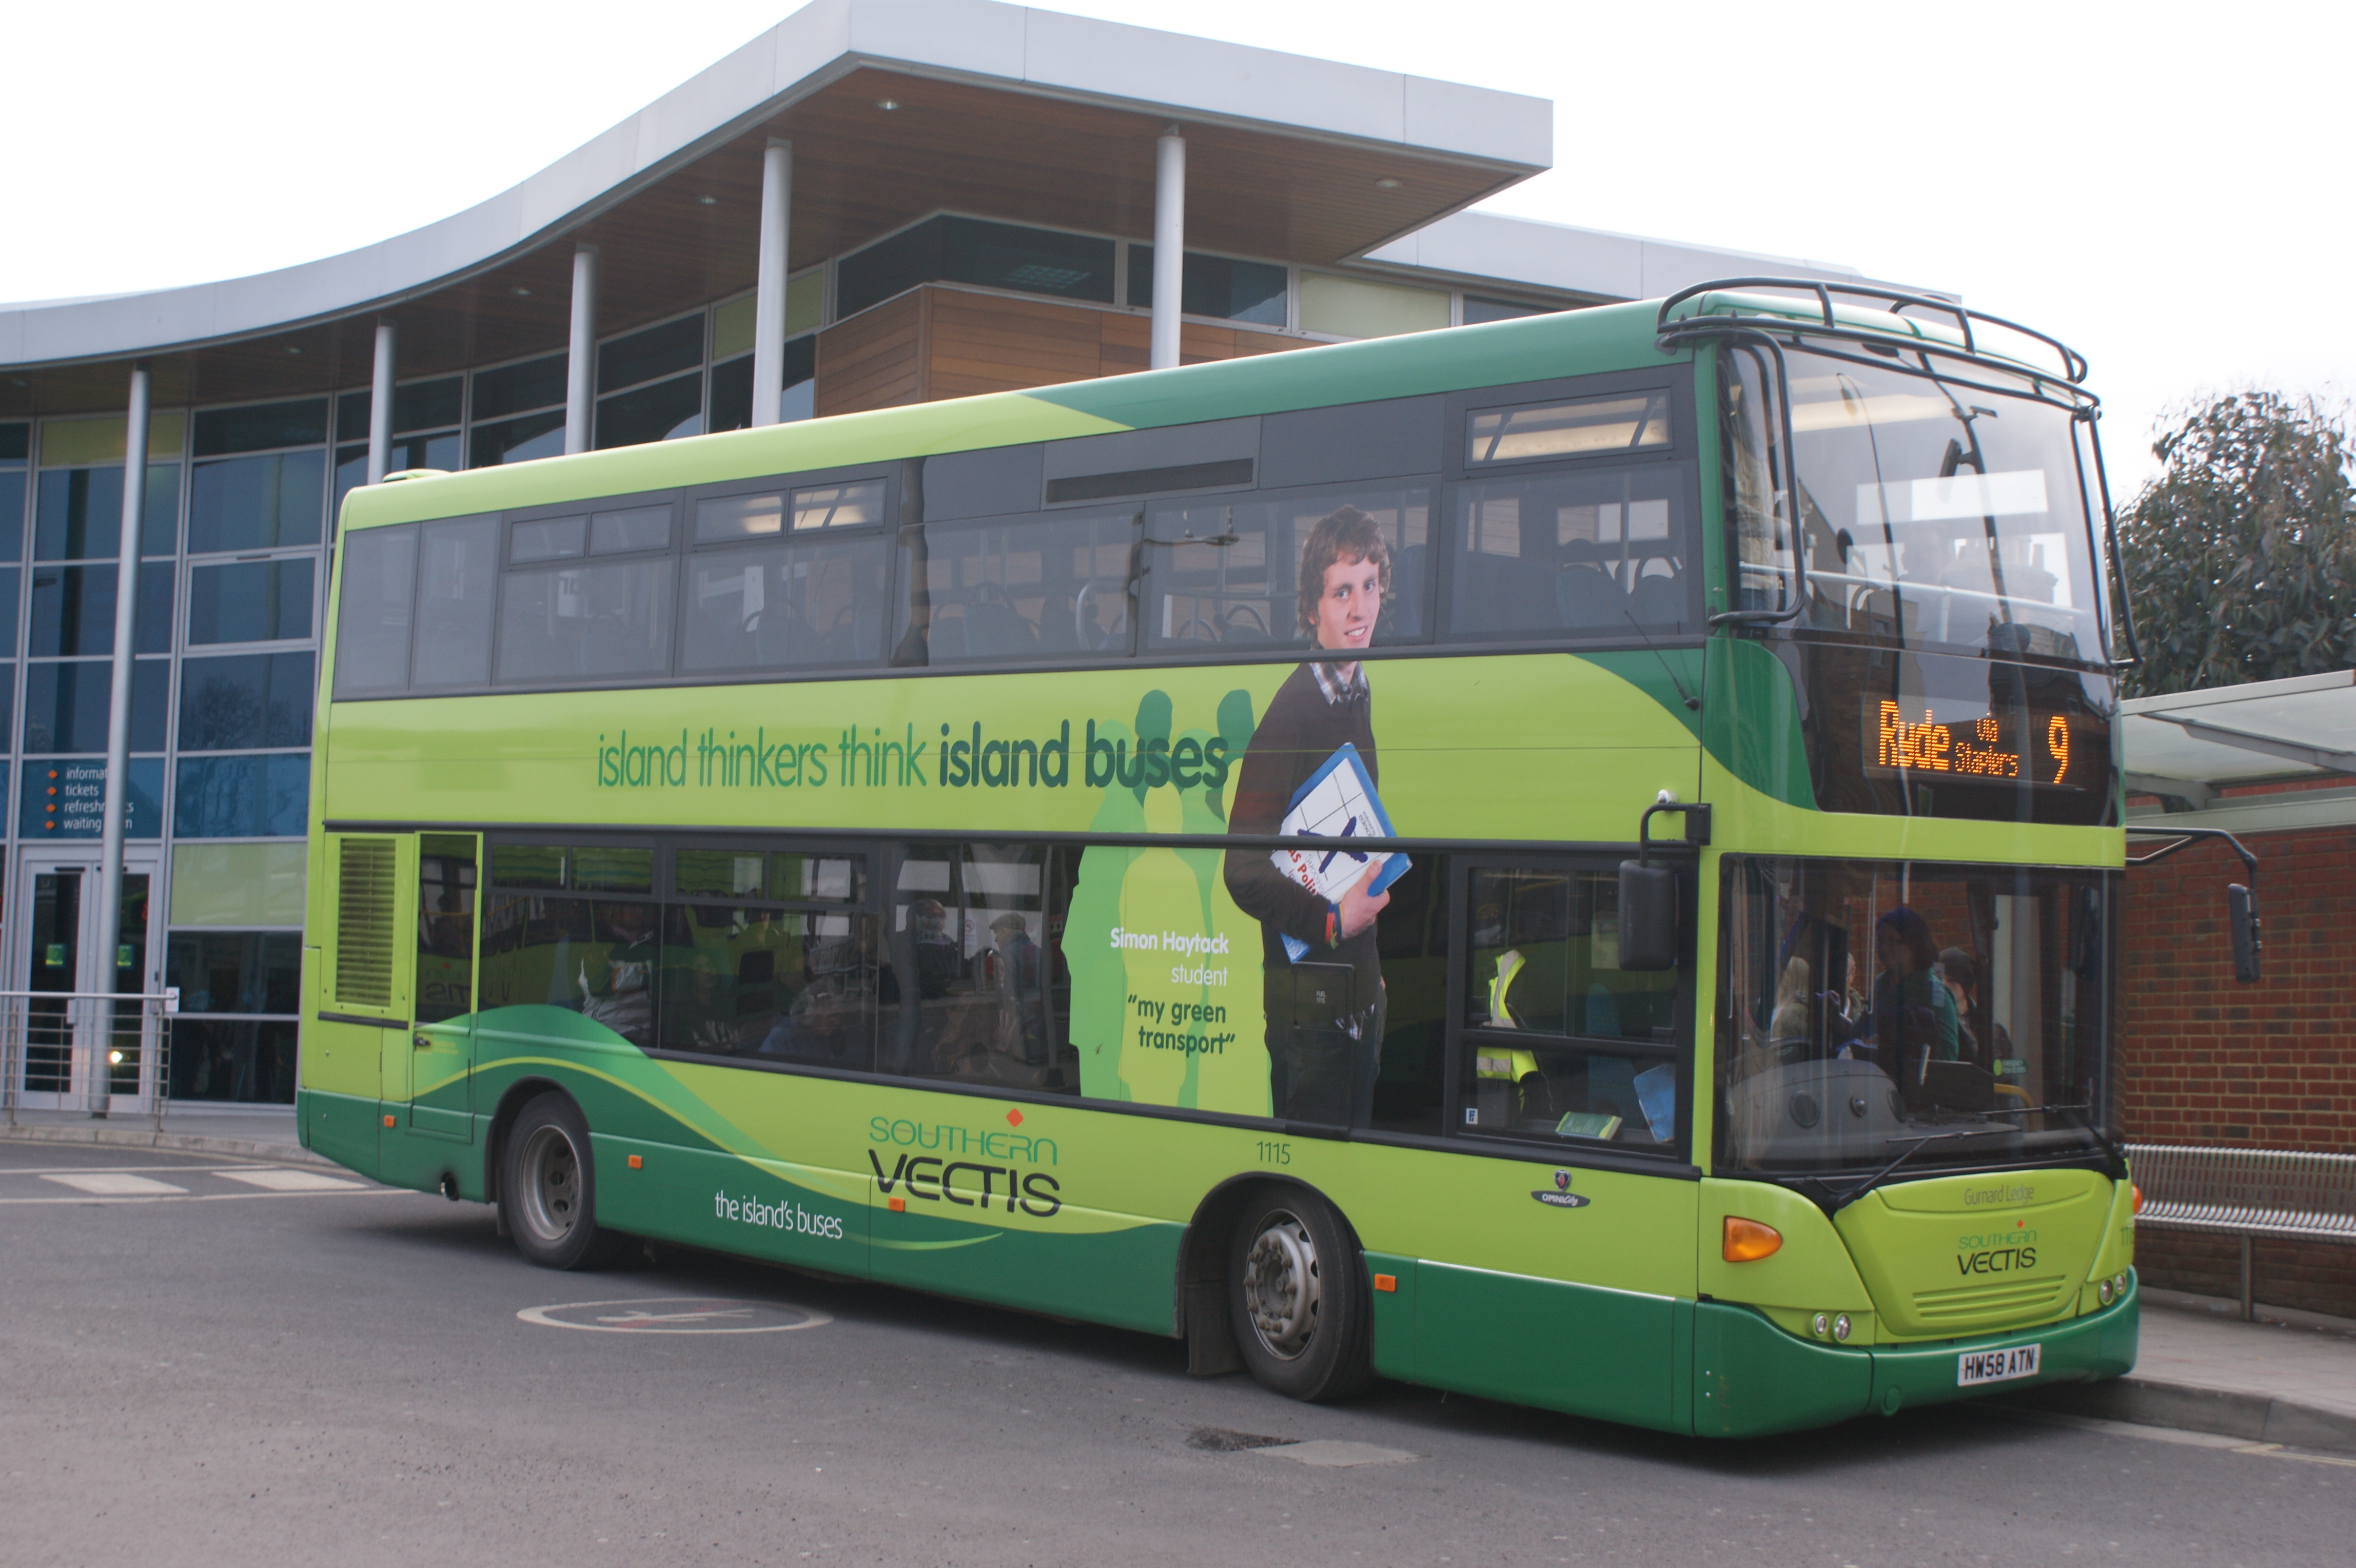 File:Southern Vectis 1115.JPG